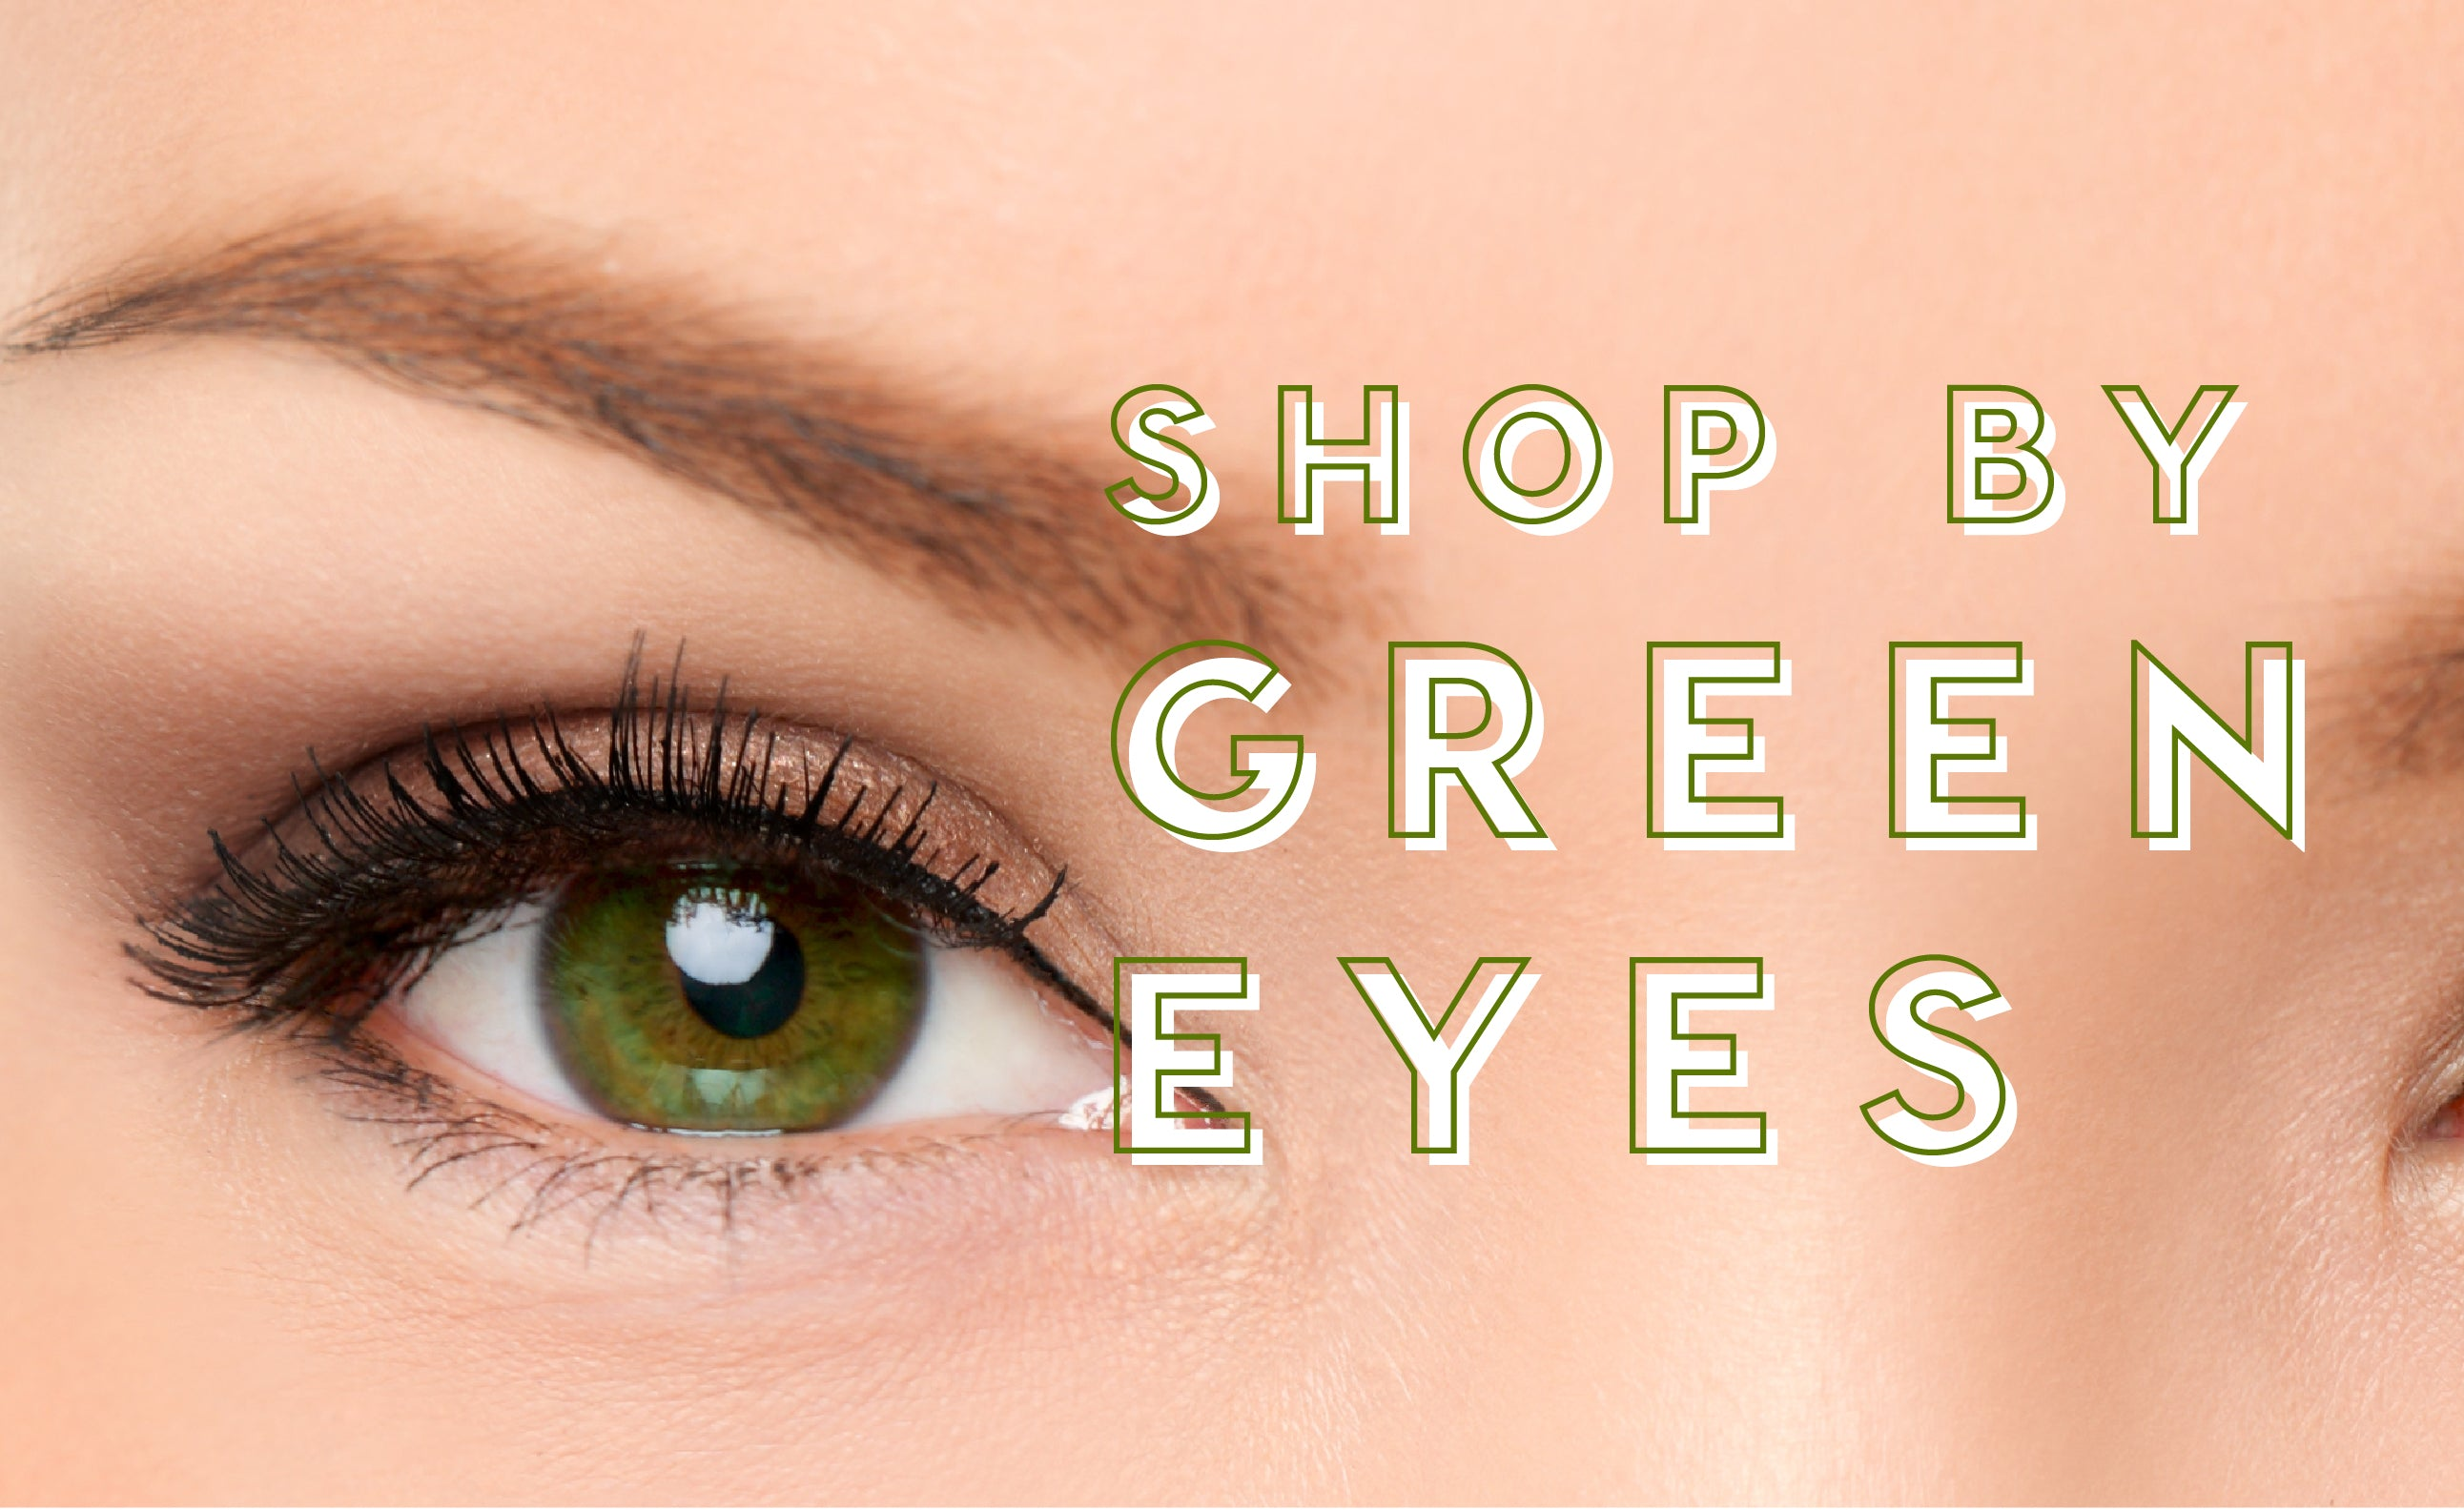 Shop by green eyes